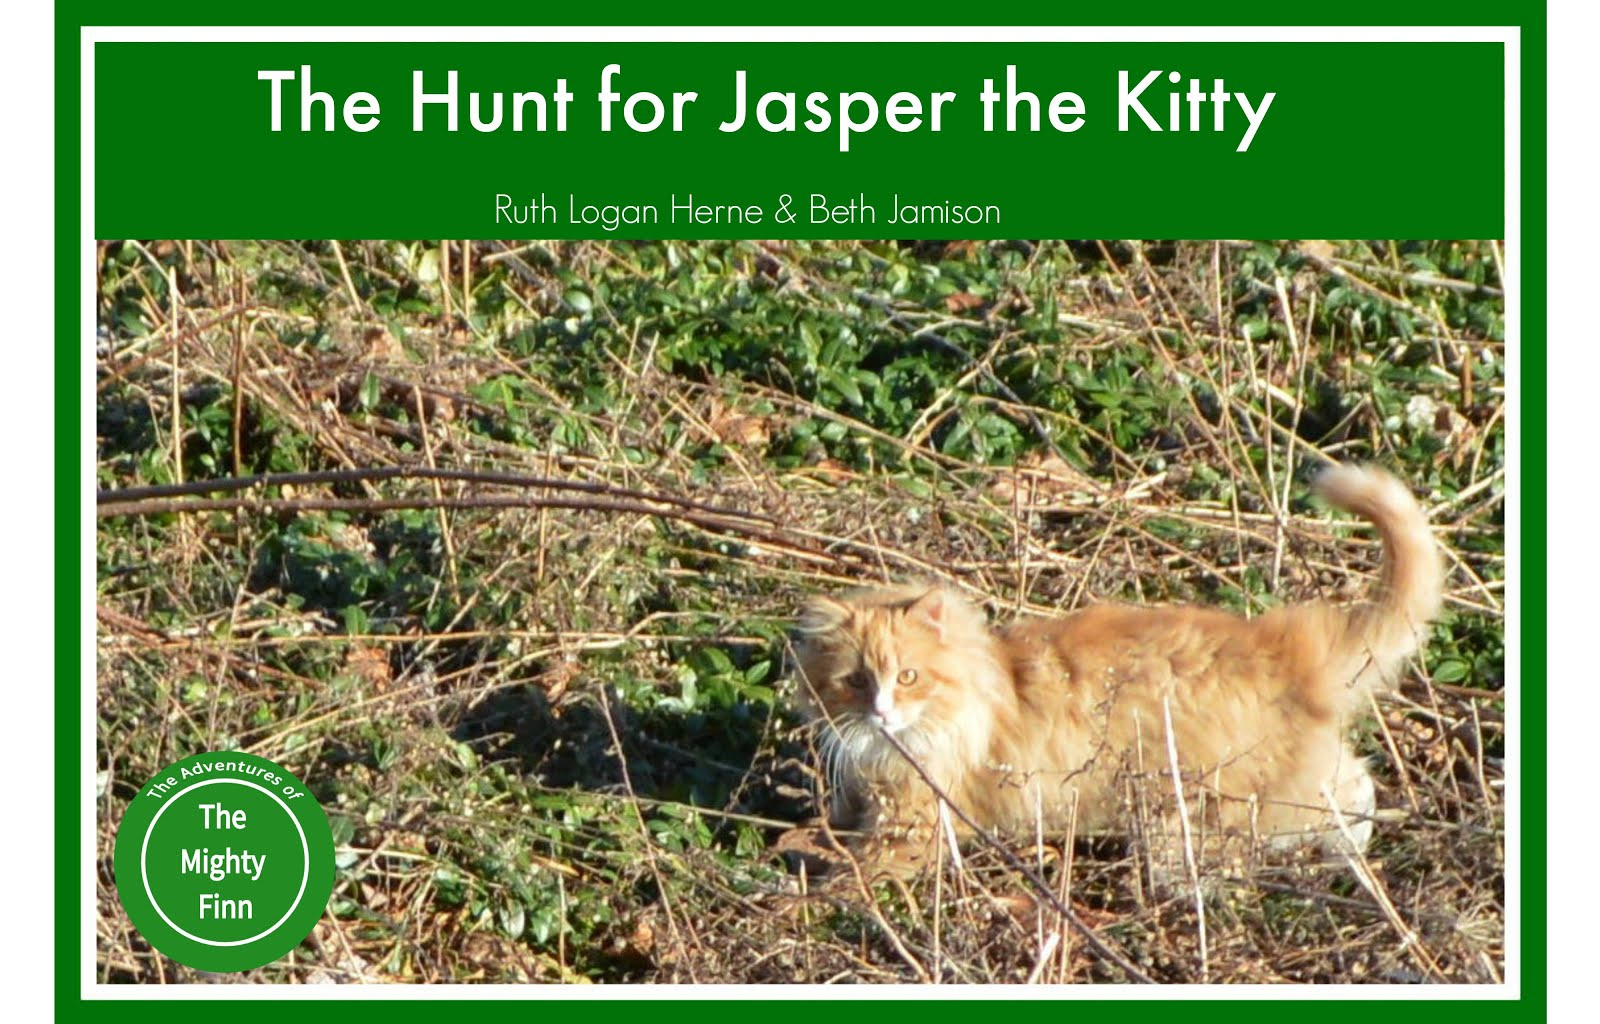 The Hunt for Jasper the Kitty